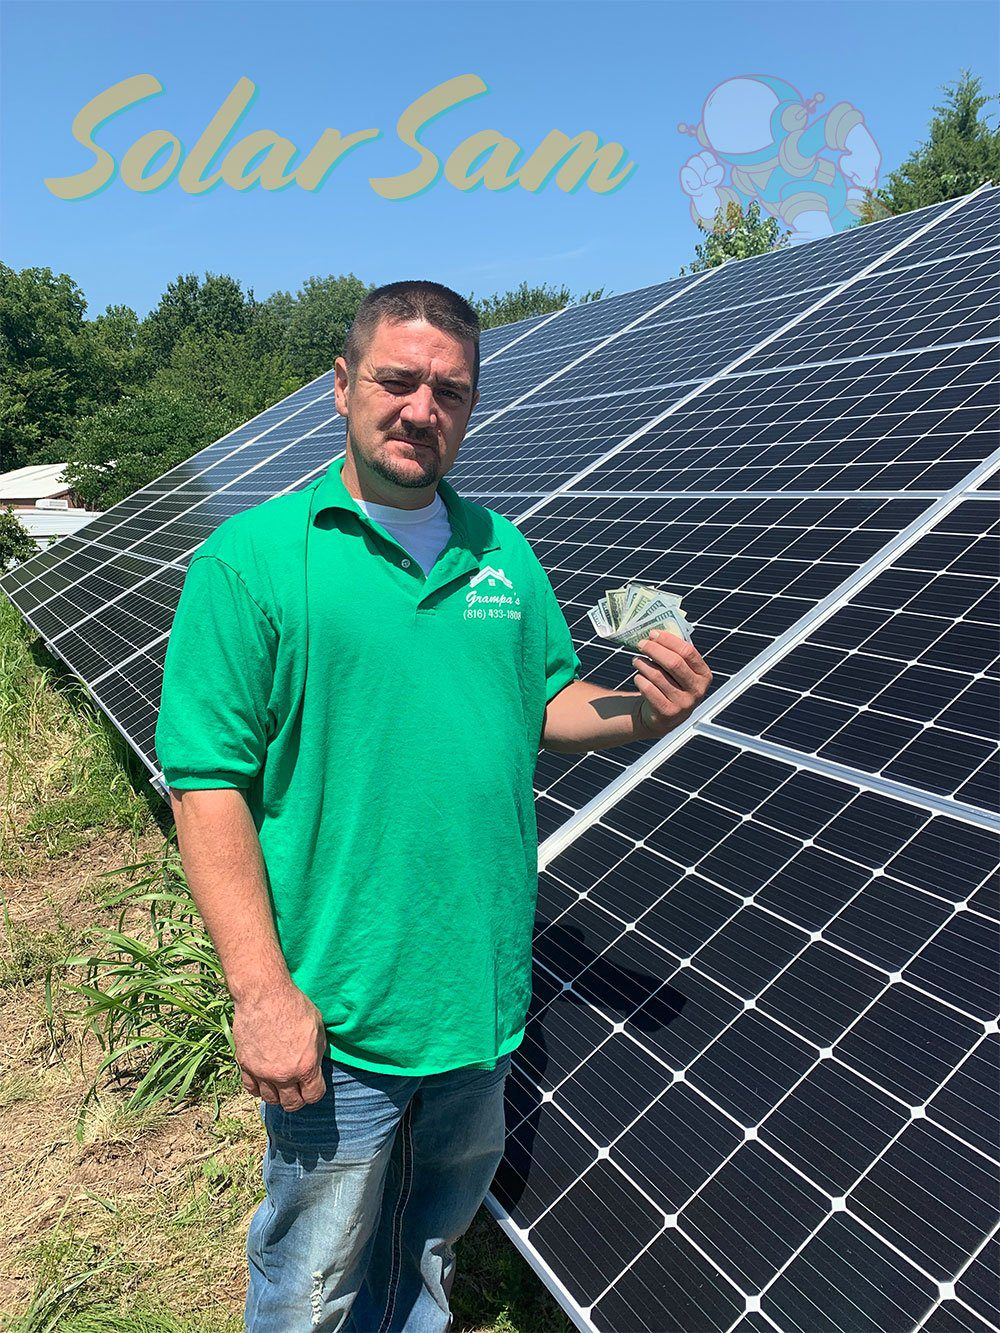 Solar Panels Installation in Blue Springs Missouri by Solar Sam Professional Solar Panel Installer for Single Family Home Saving Money with Green Electricity